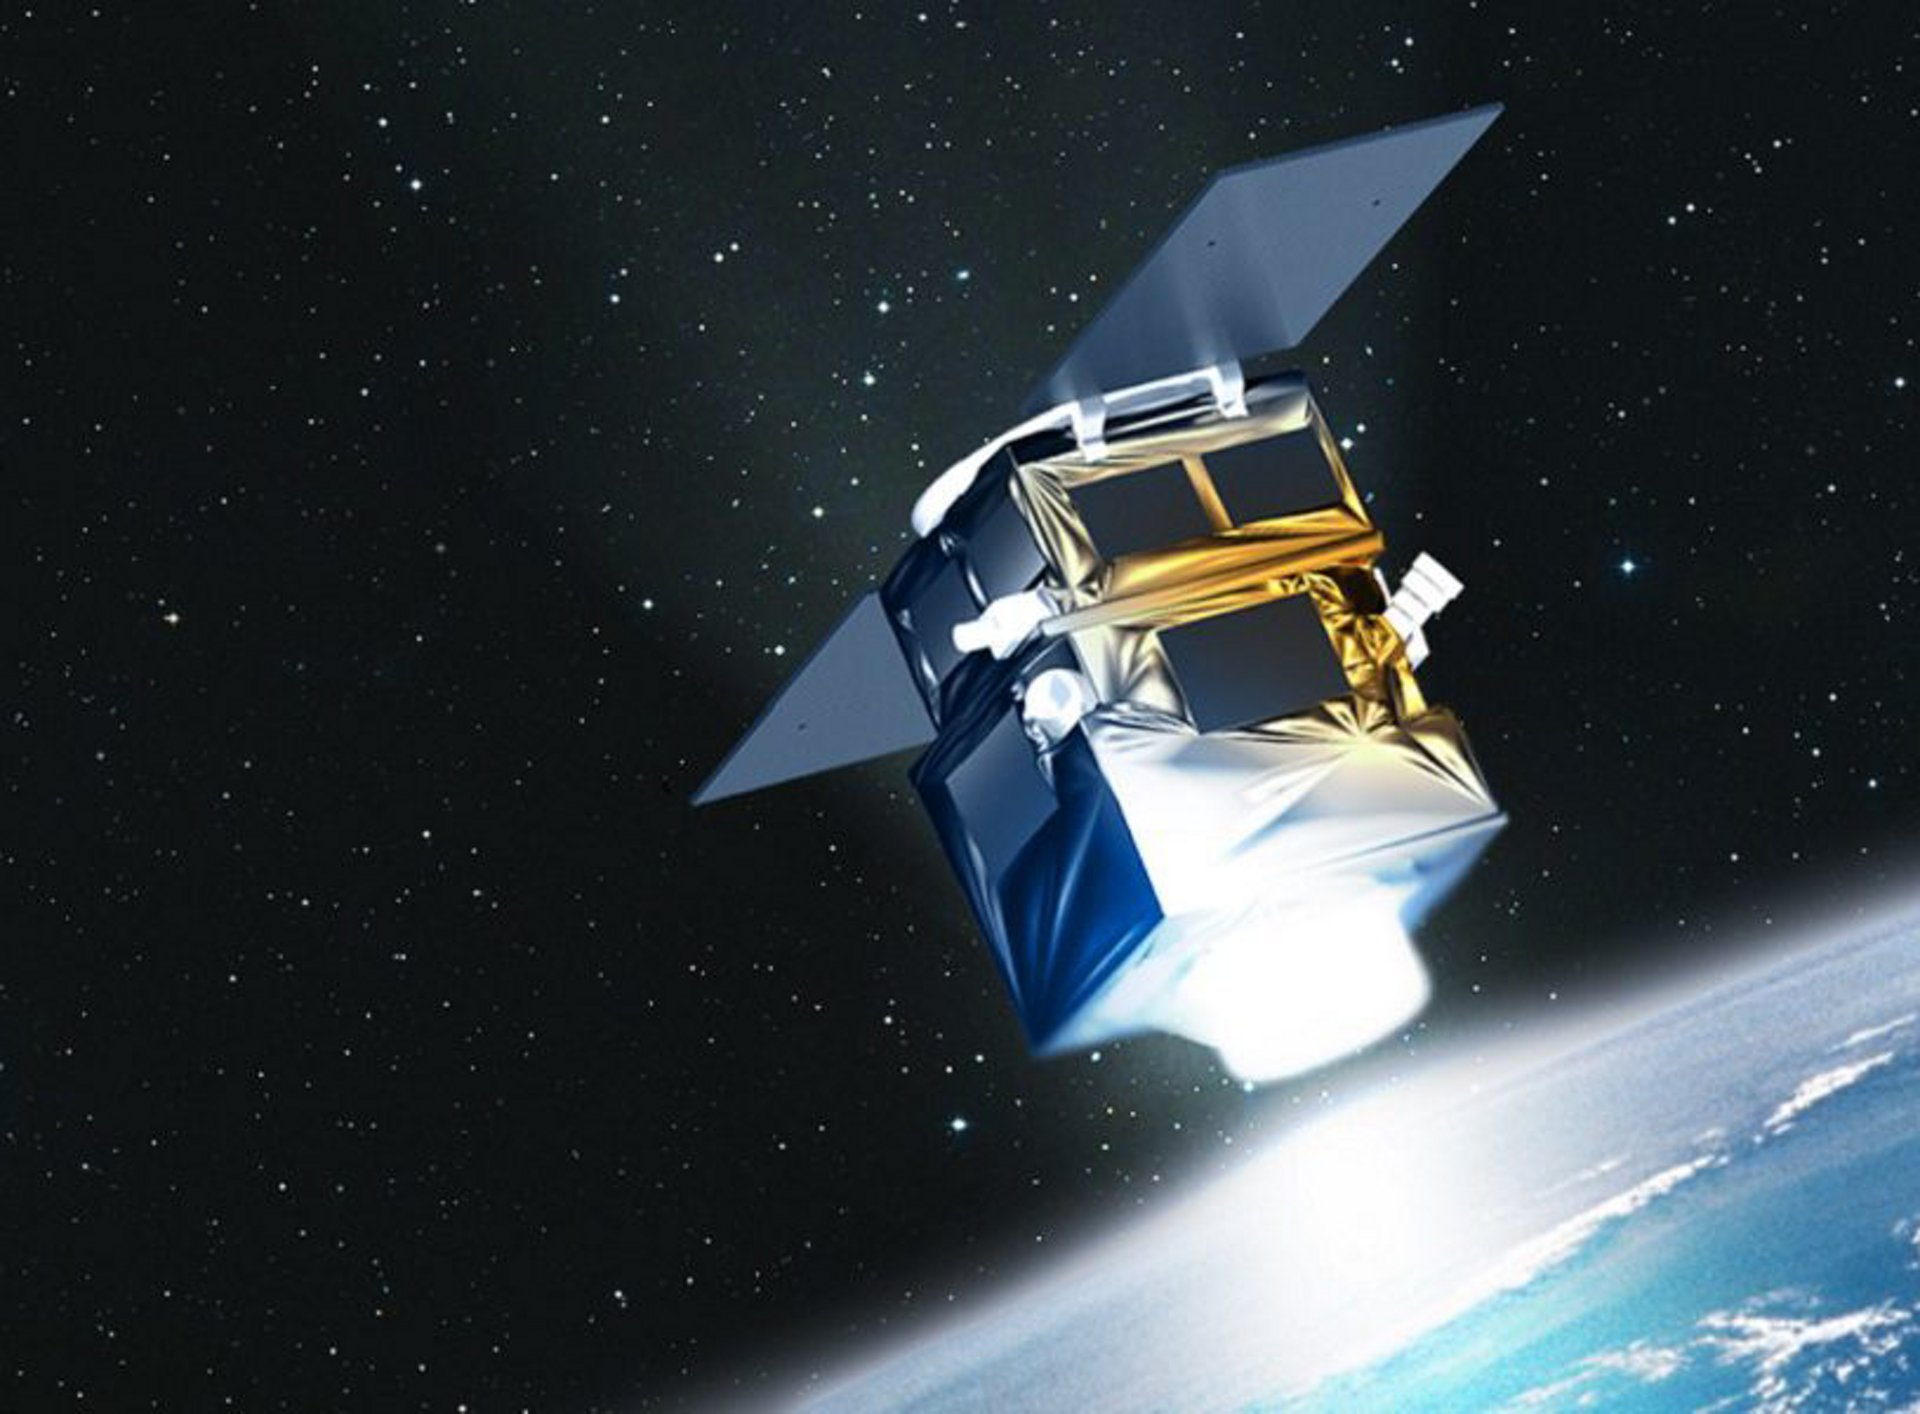 A representation of the Airbus-produced PerúSAT-1 very-high-resolution Earth observation satellite, which was launched in 2016.